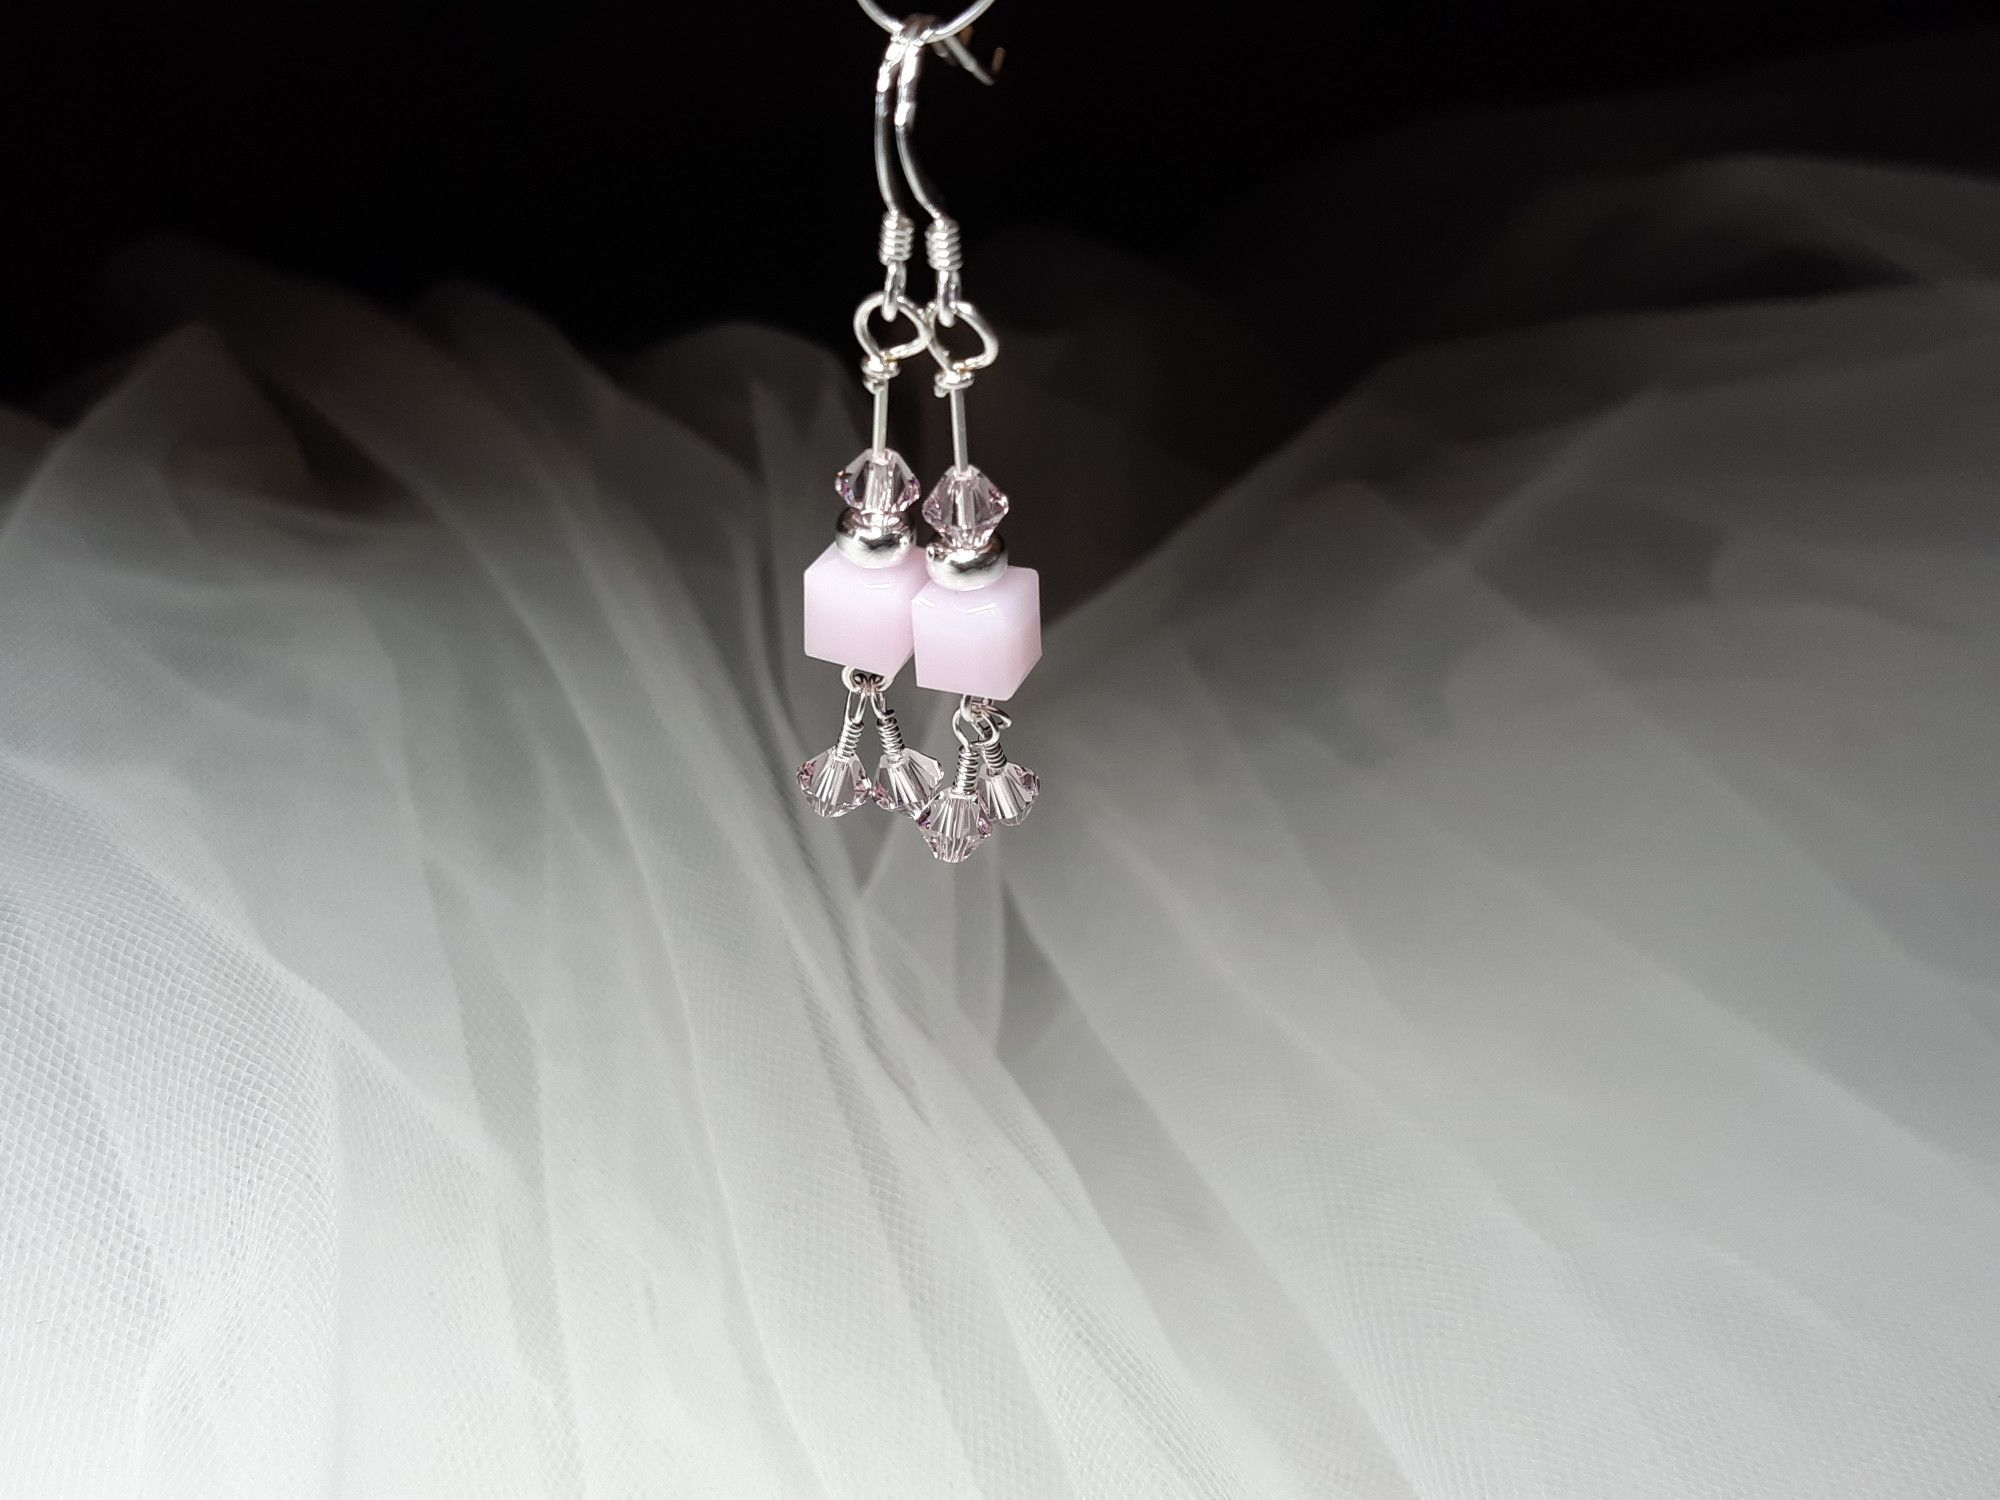 Occasion-peony pink+sterling silver earrings-6.jpg